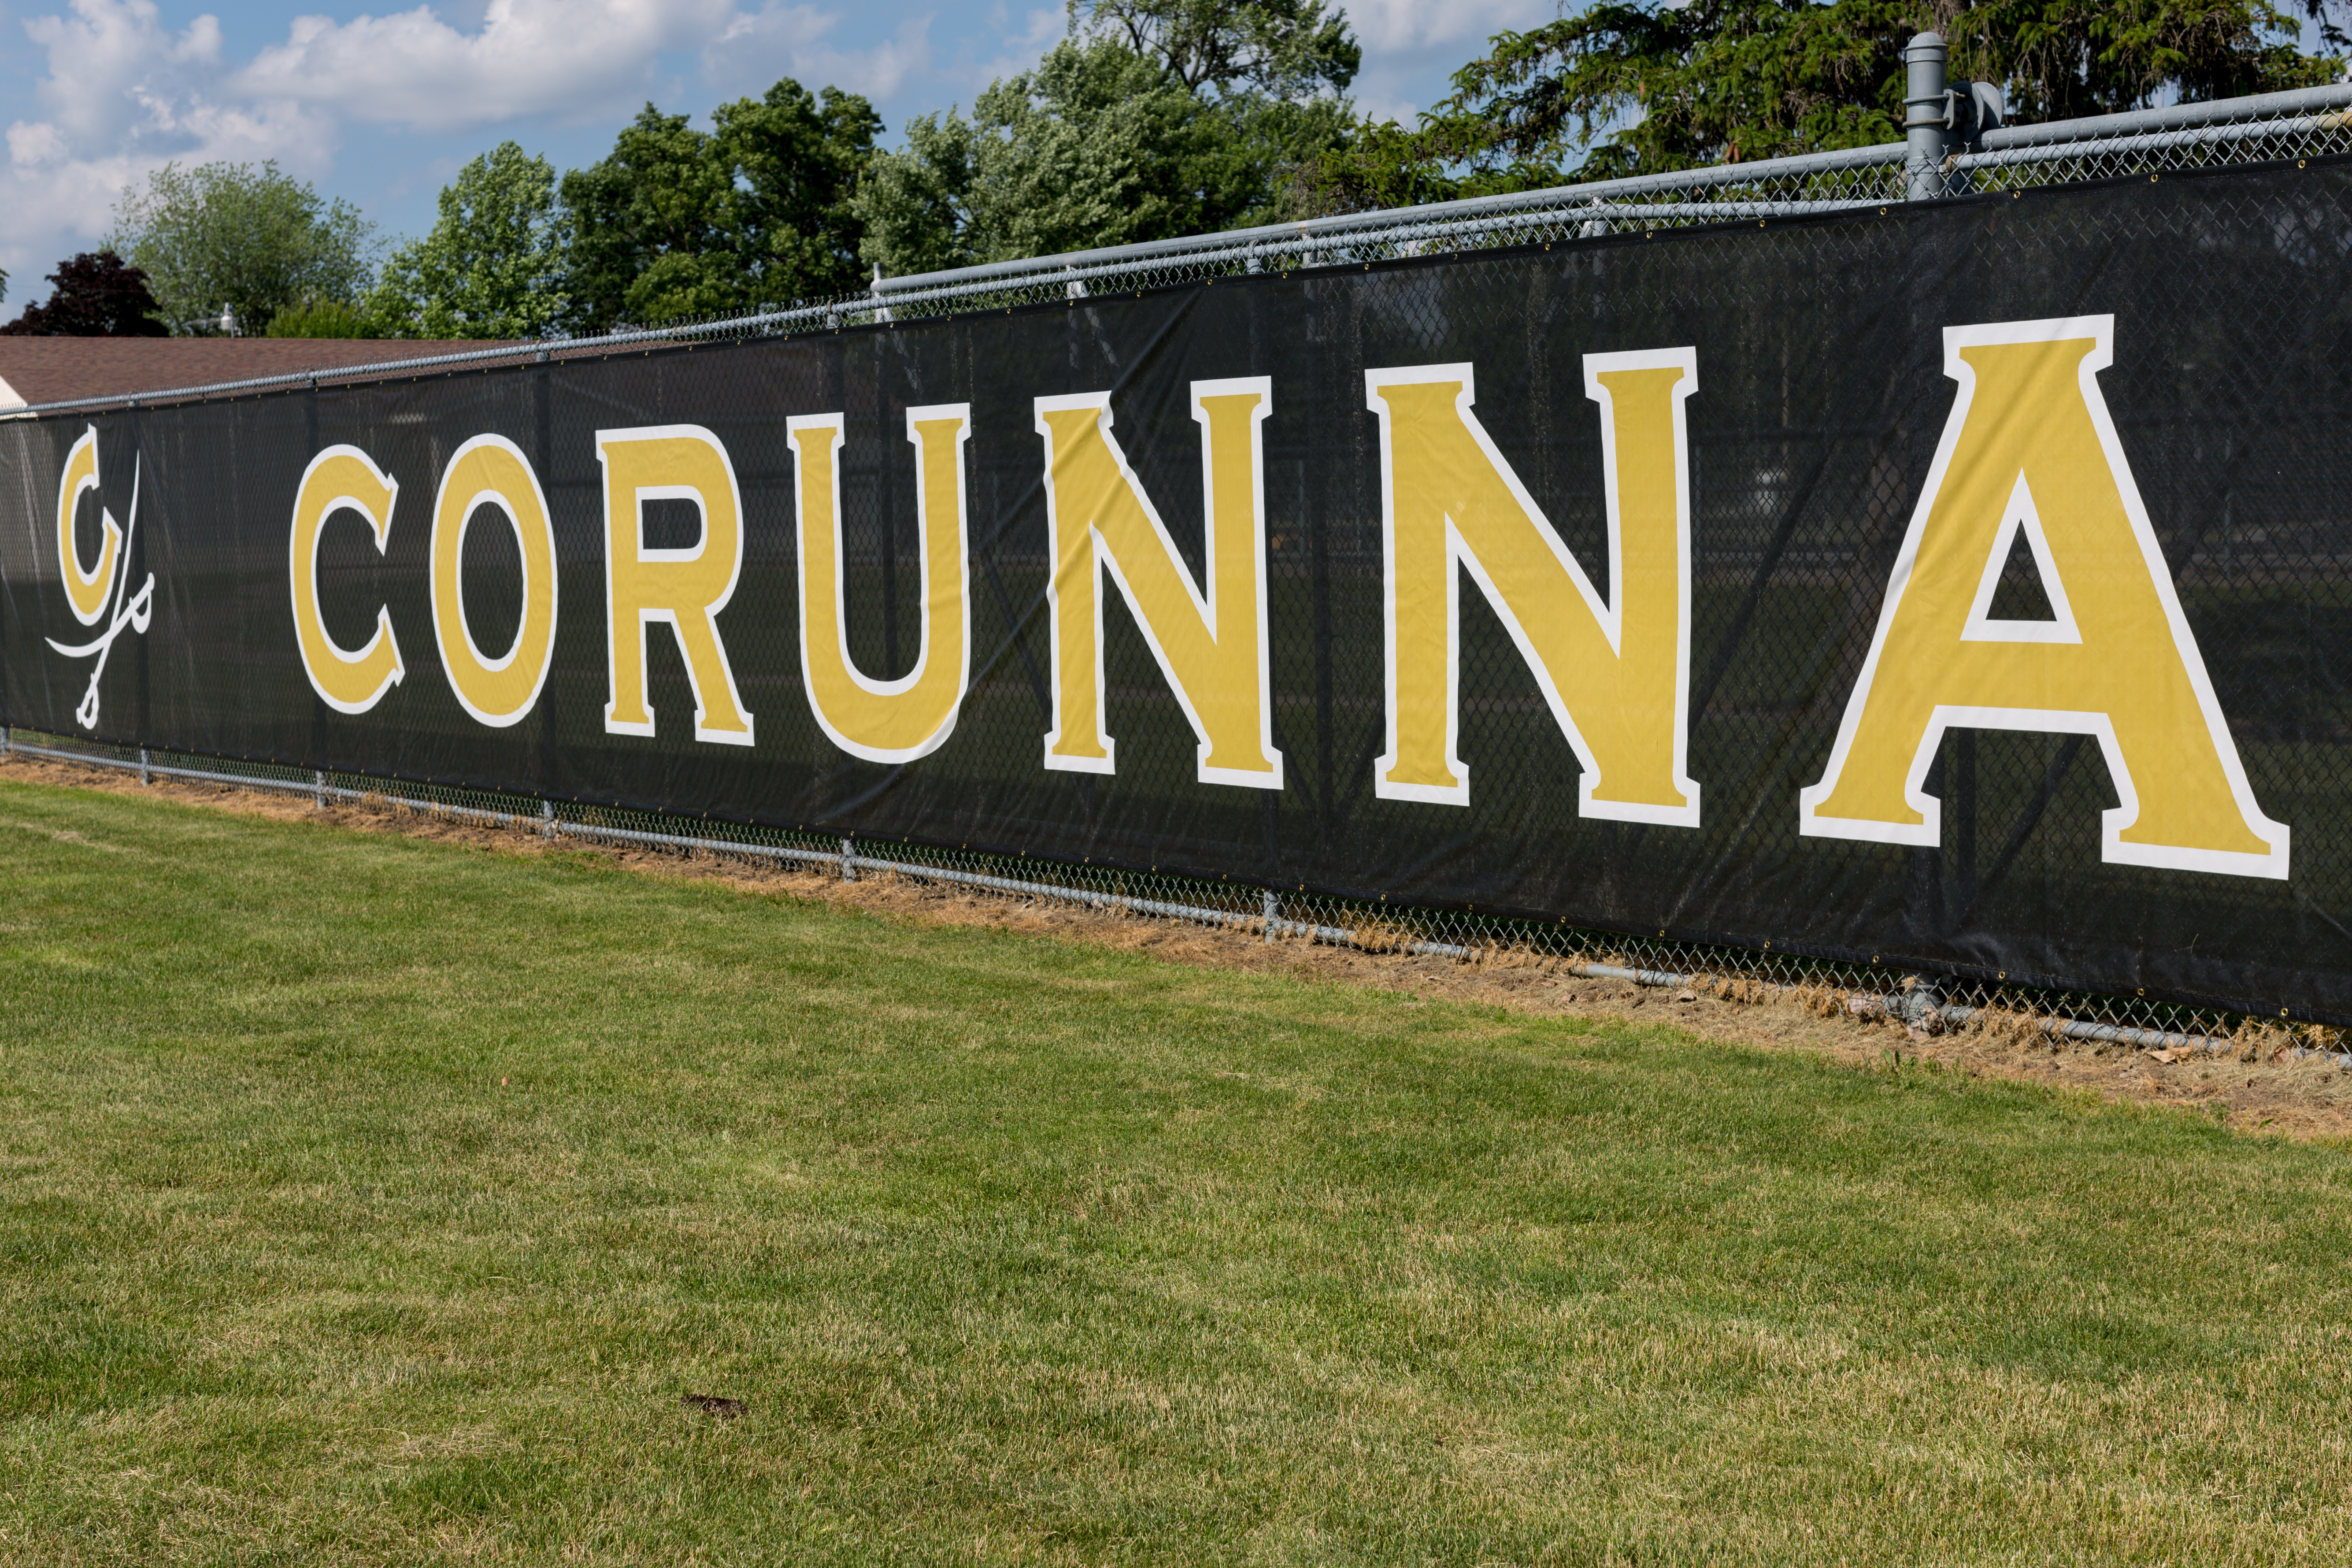 Corunna Sign